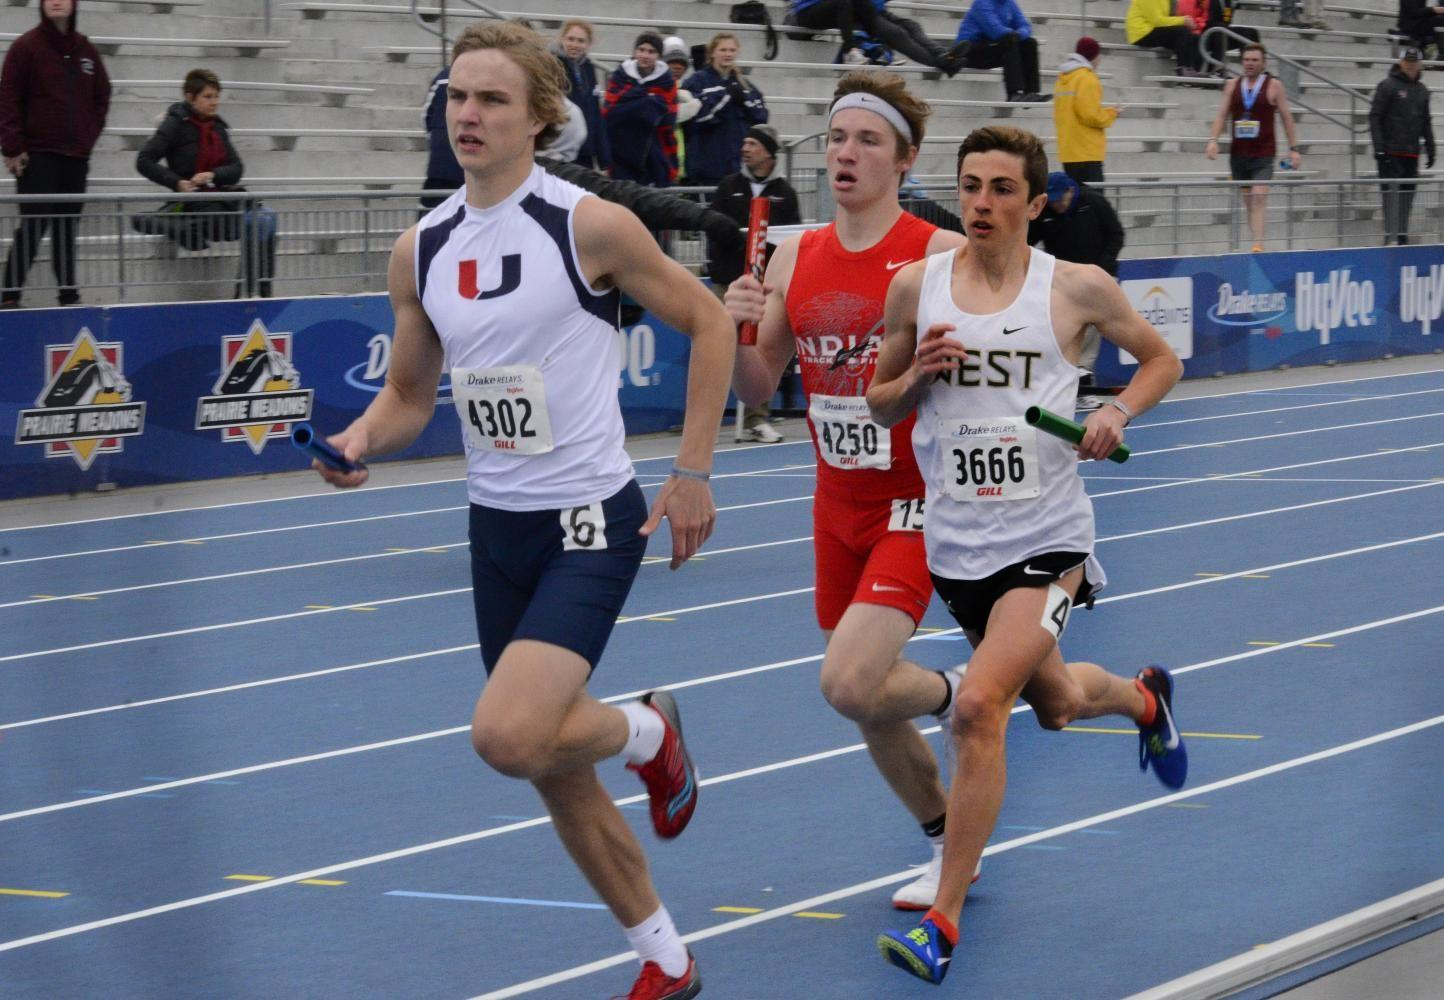 Kolby Greiner '19 runs in the boys 4x800-meter relay on Saturday, May 29 at the Drake Relays. The boys placed ninth in the event.